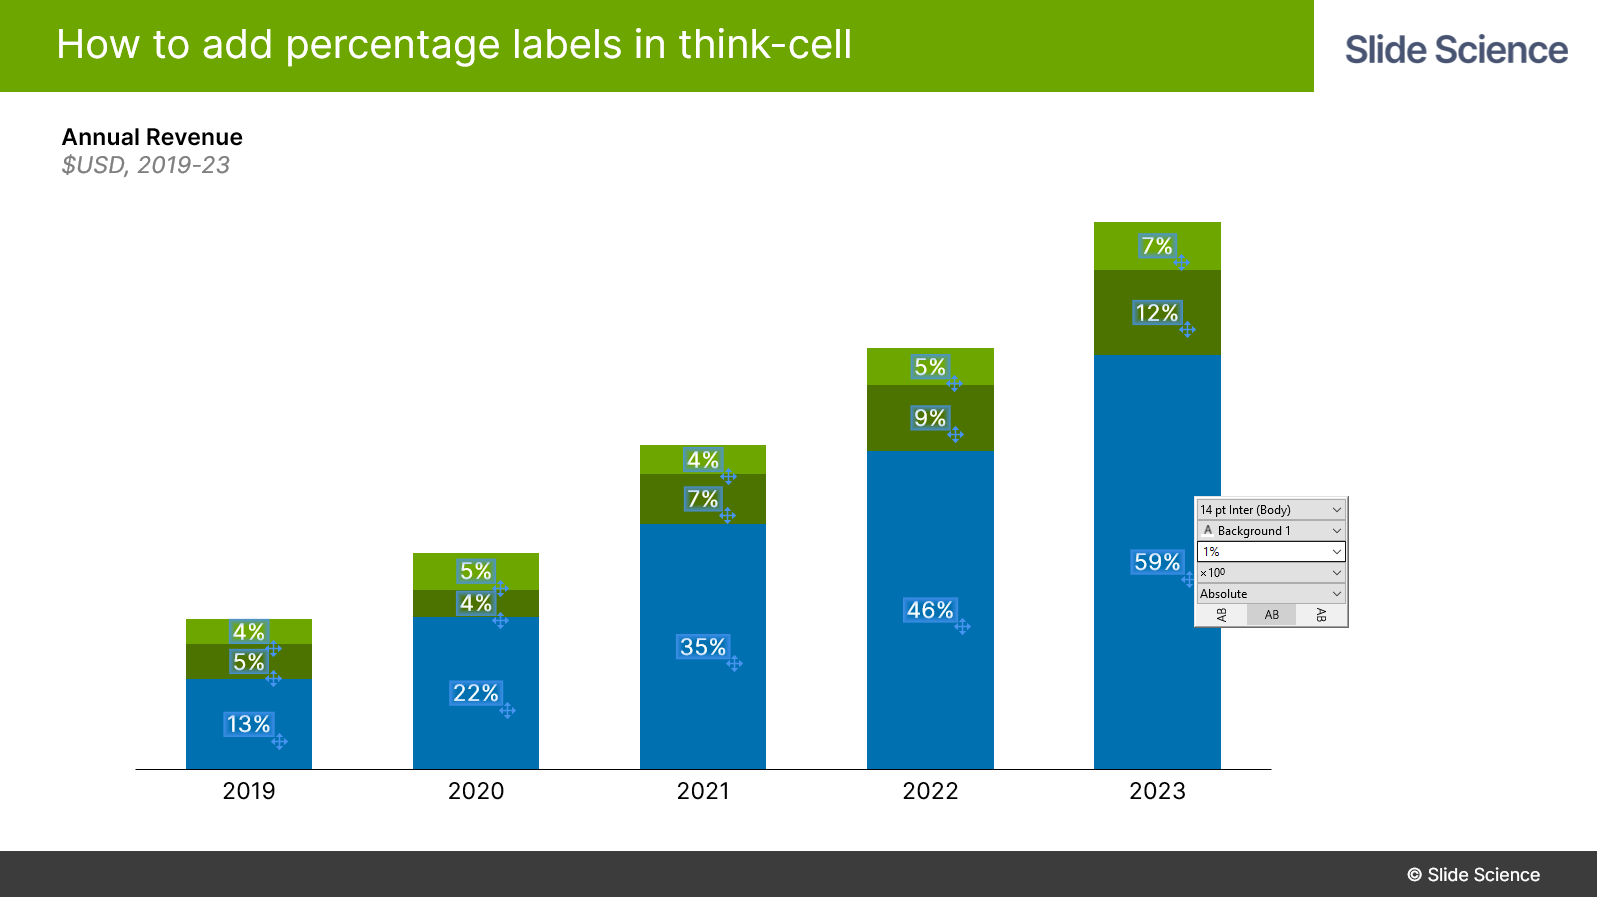 Add percentage labels in think-cell - Step 2: Adjust label format